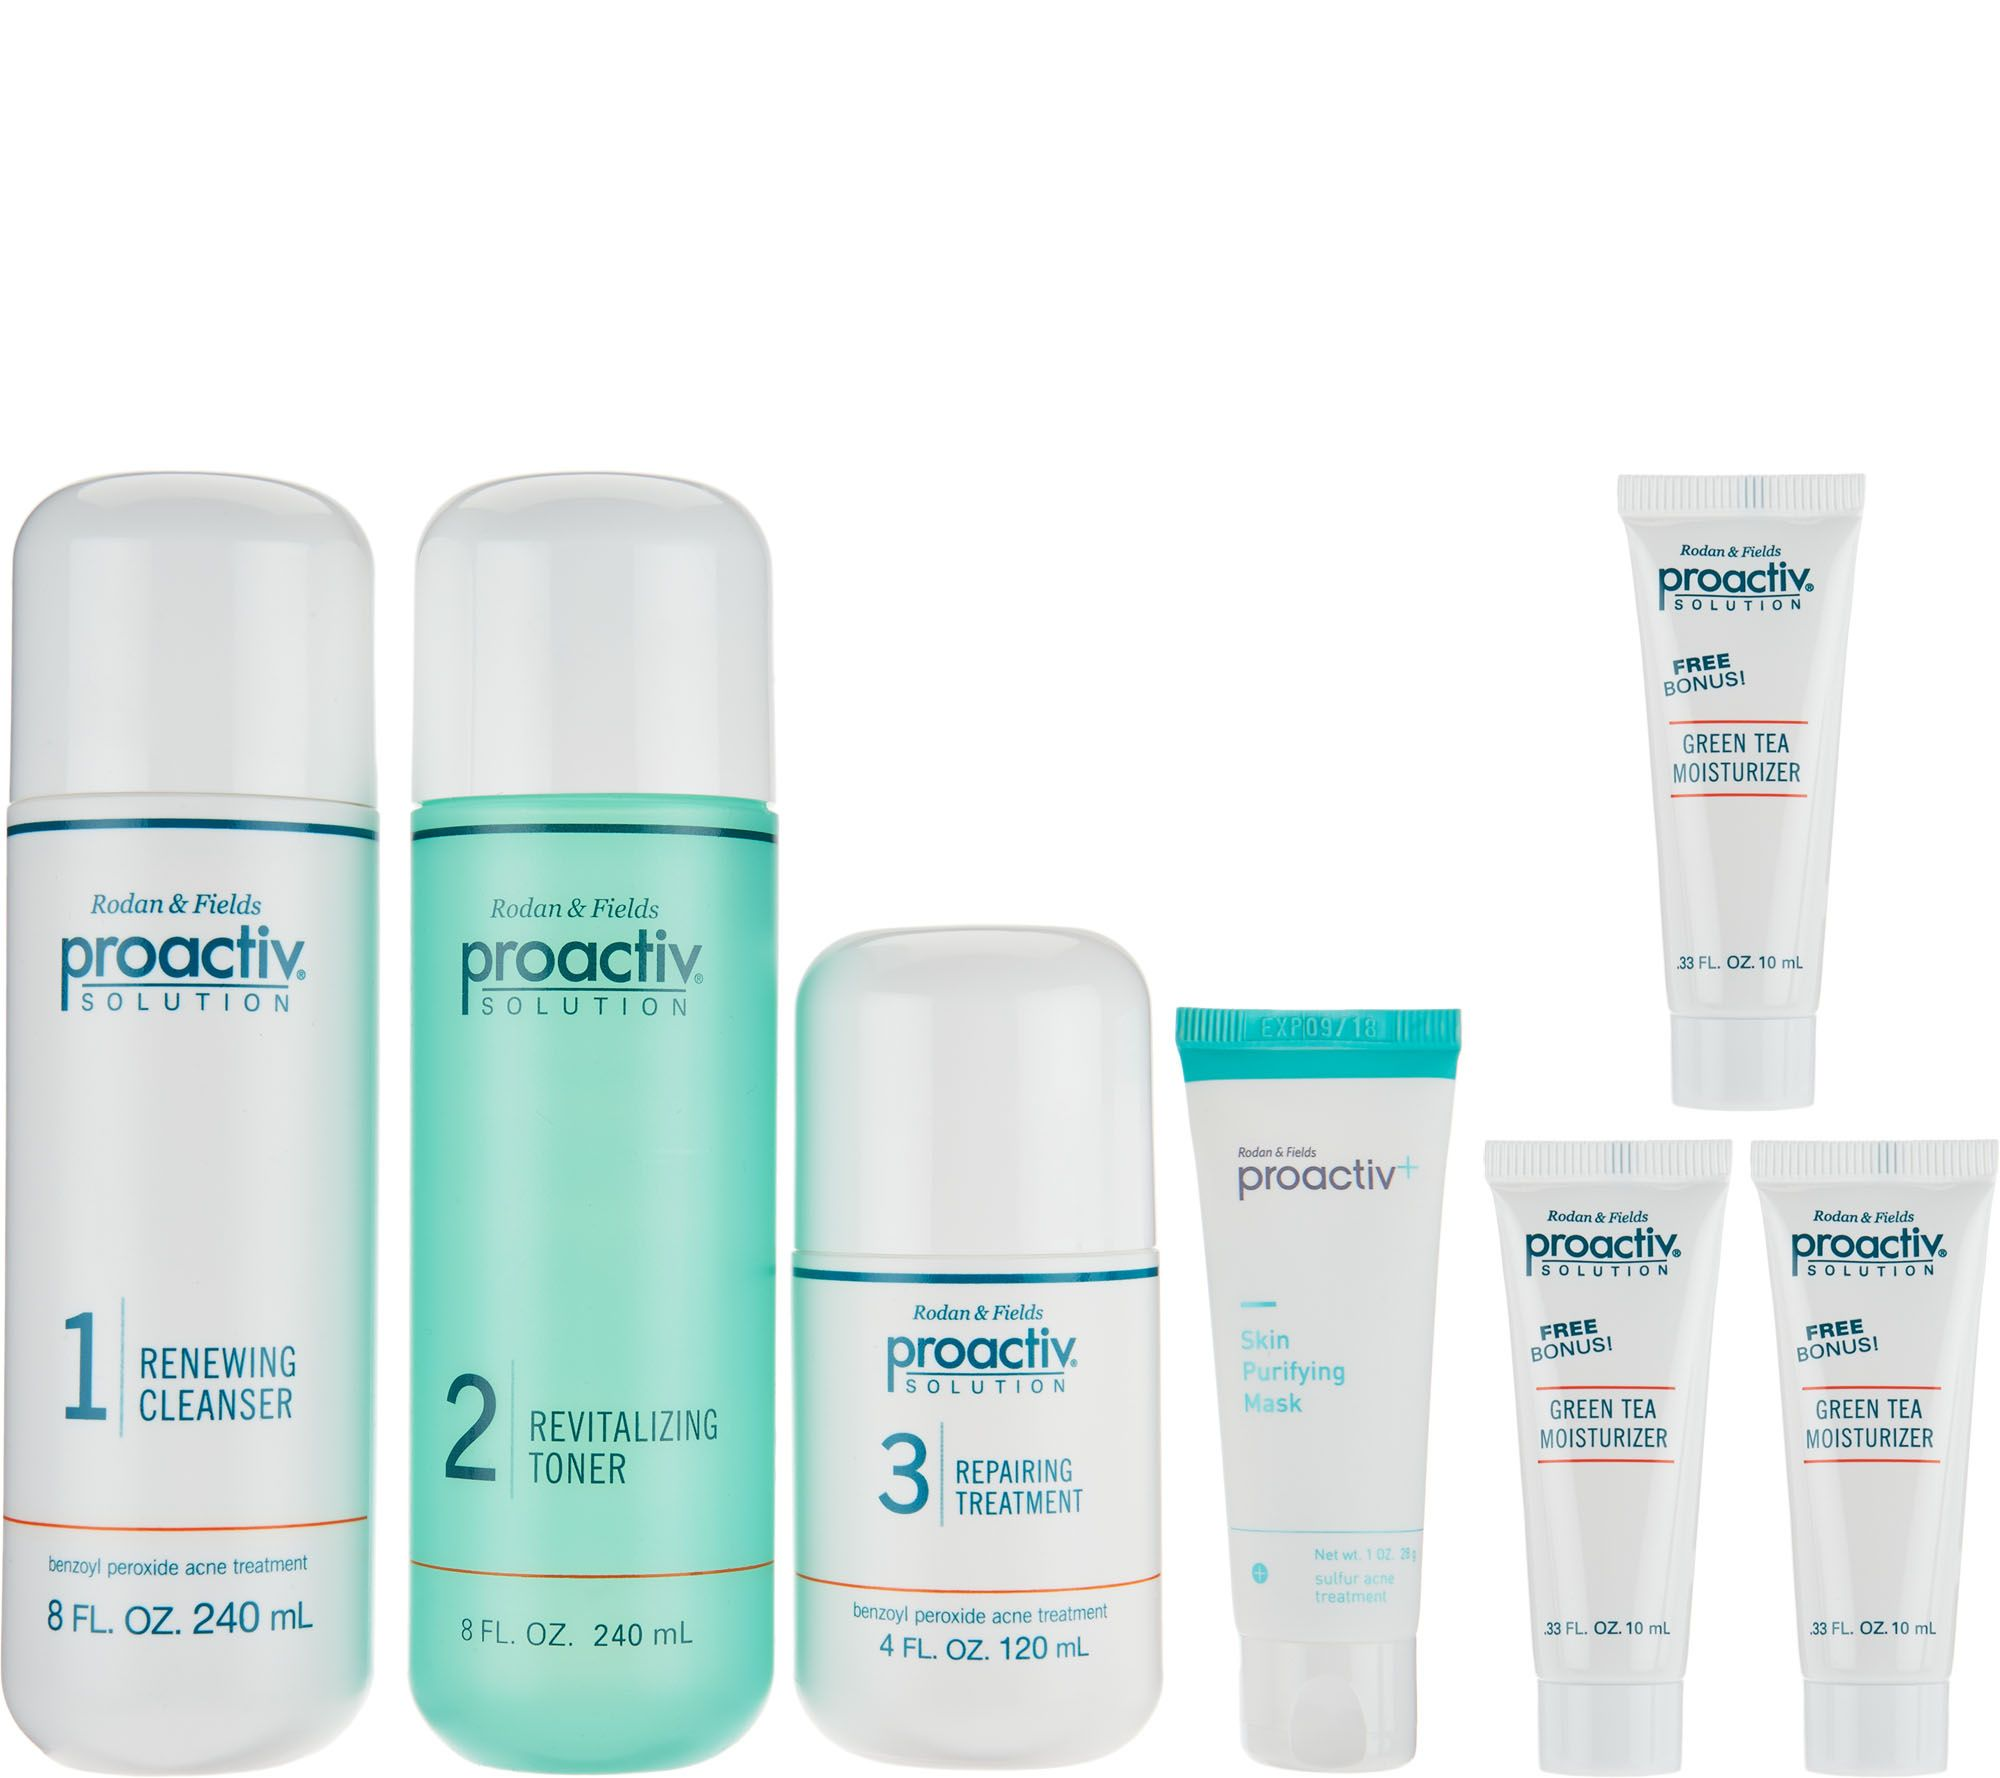 Shop for and buy proactiv skin care online at Macy's. Find proactiv skin care at Macy's.